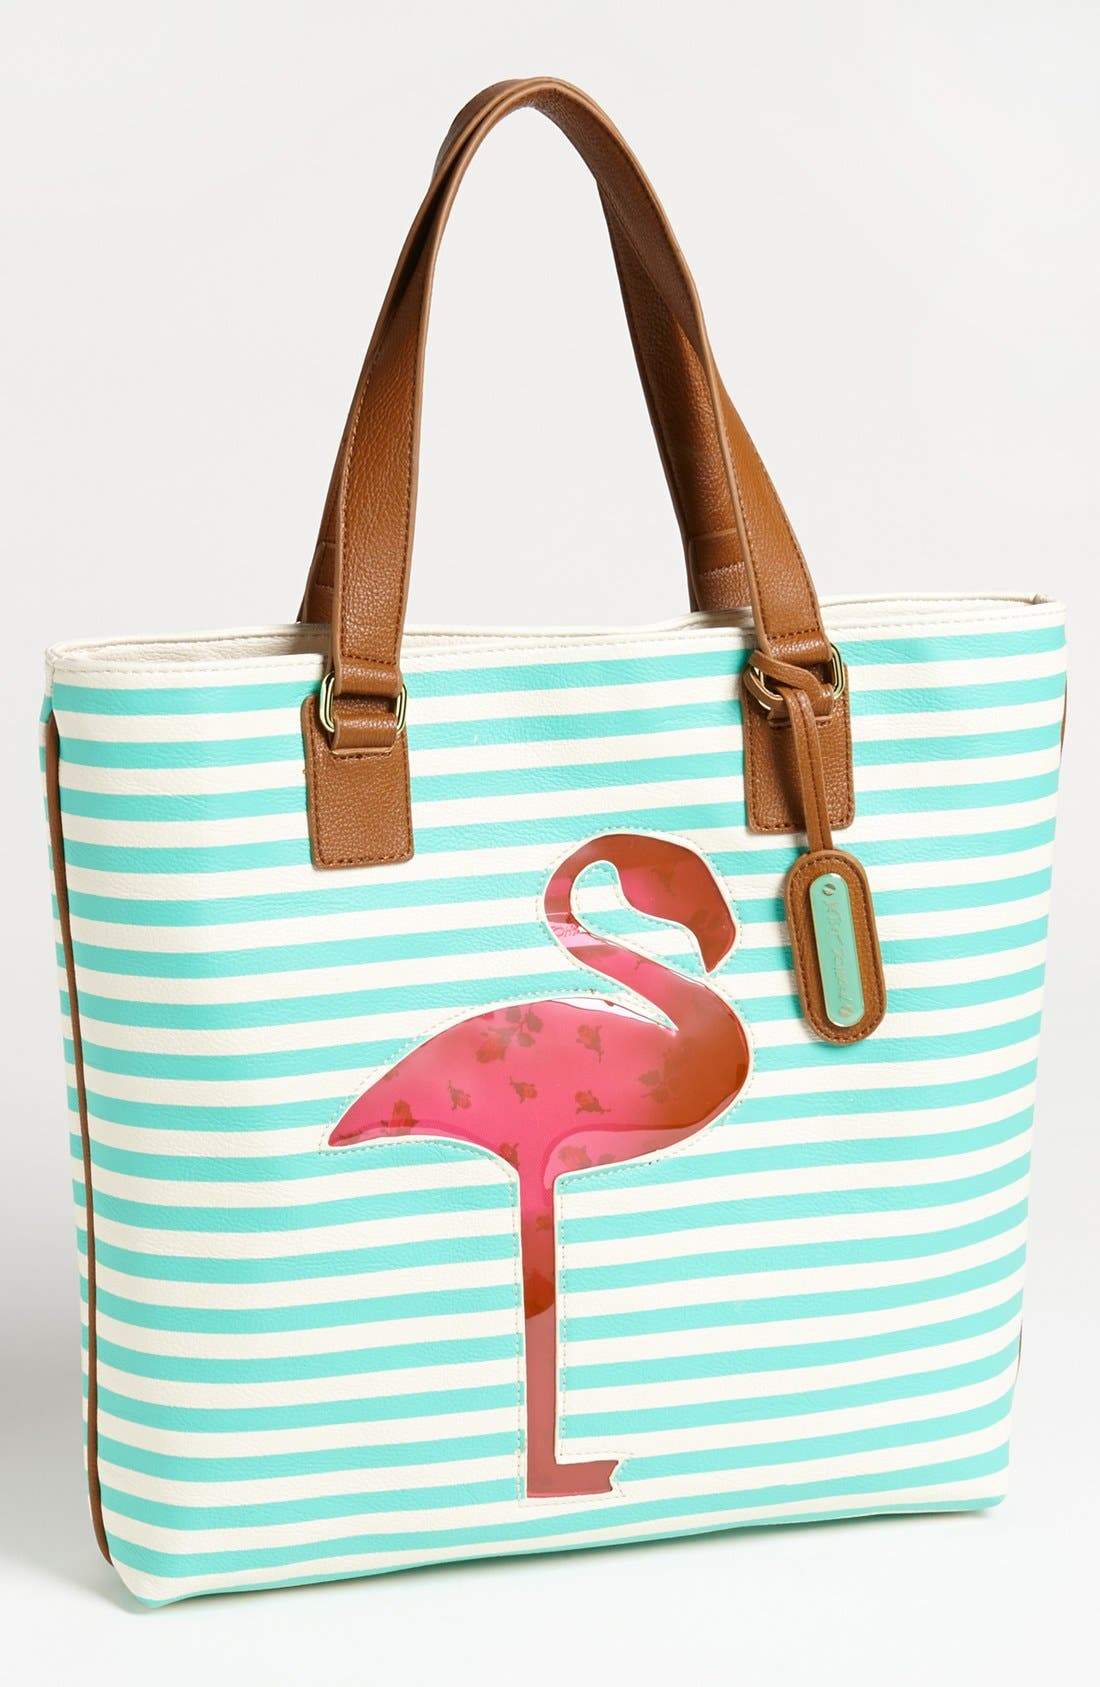 Main Image - Betsey Johnson 'Cut It Up' Tote